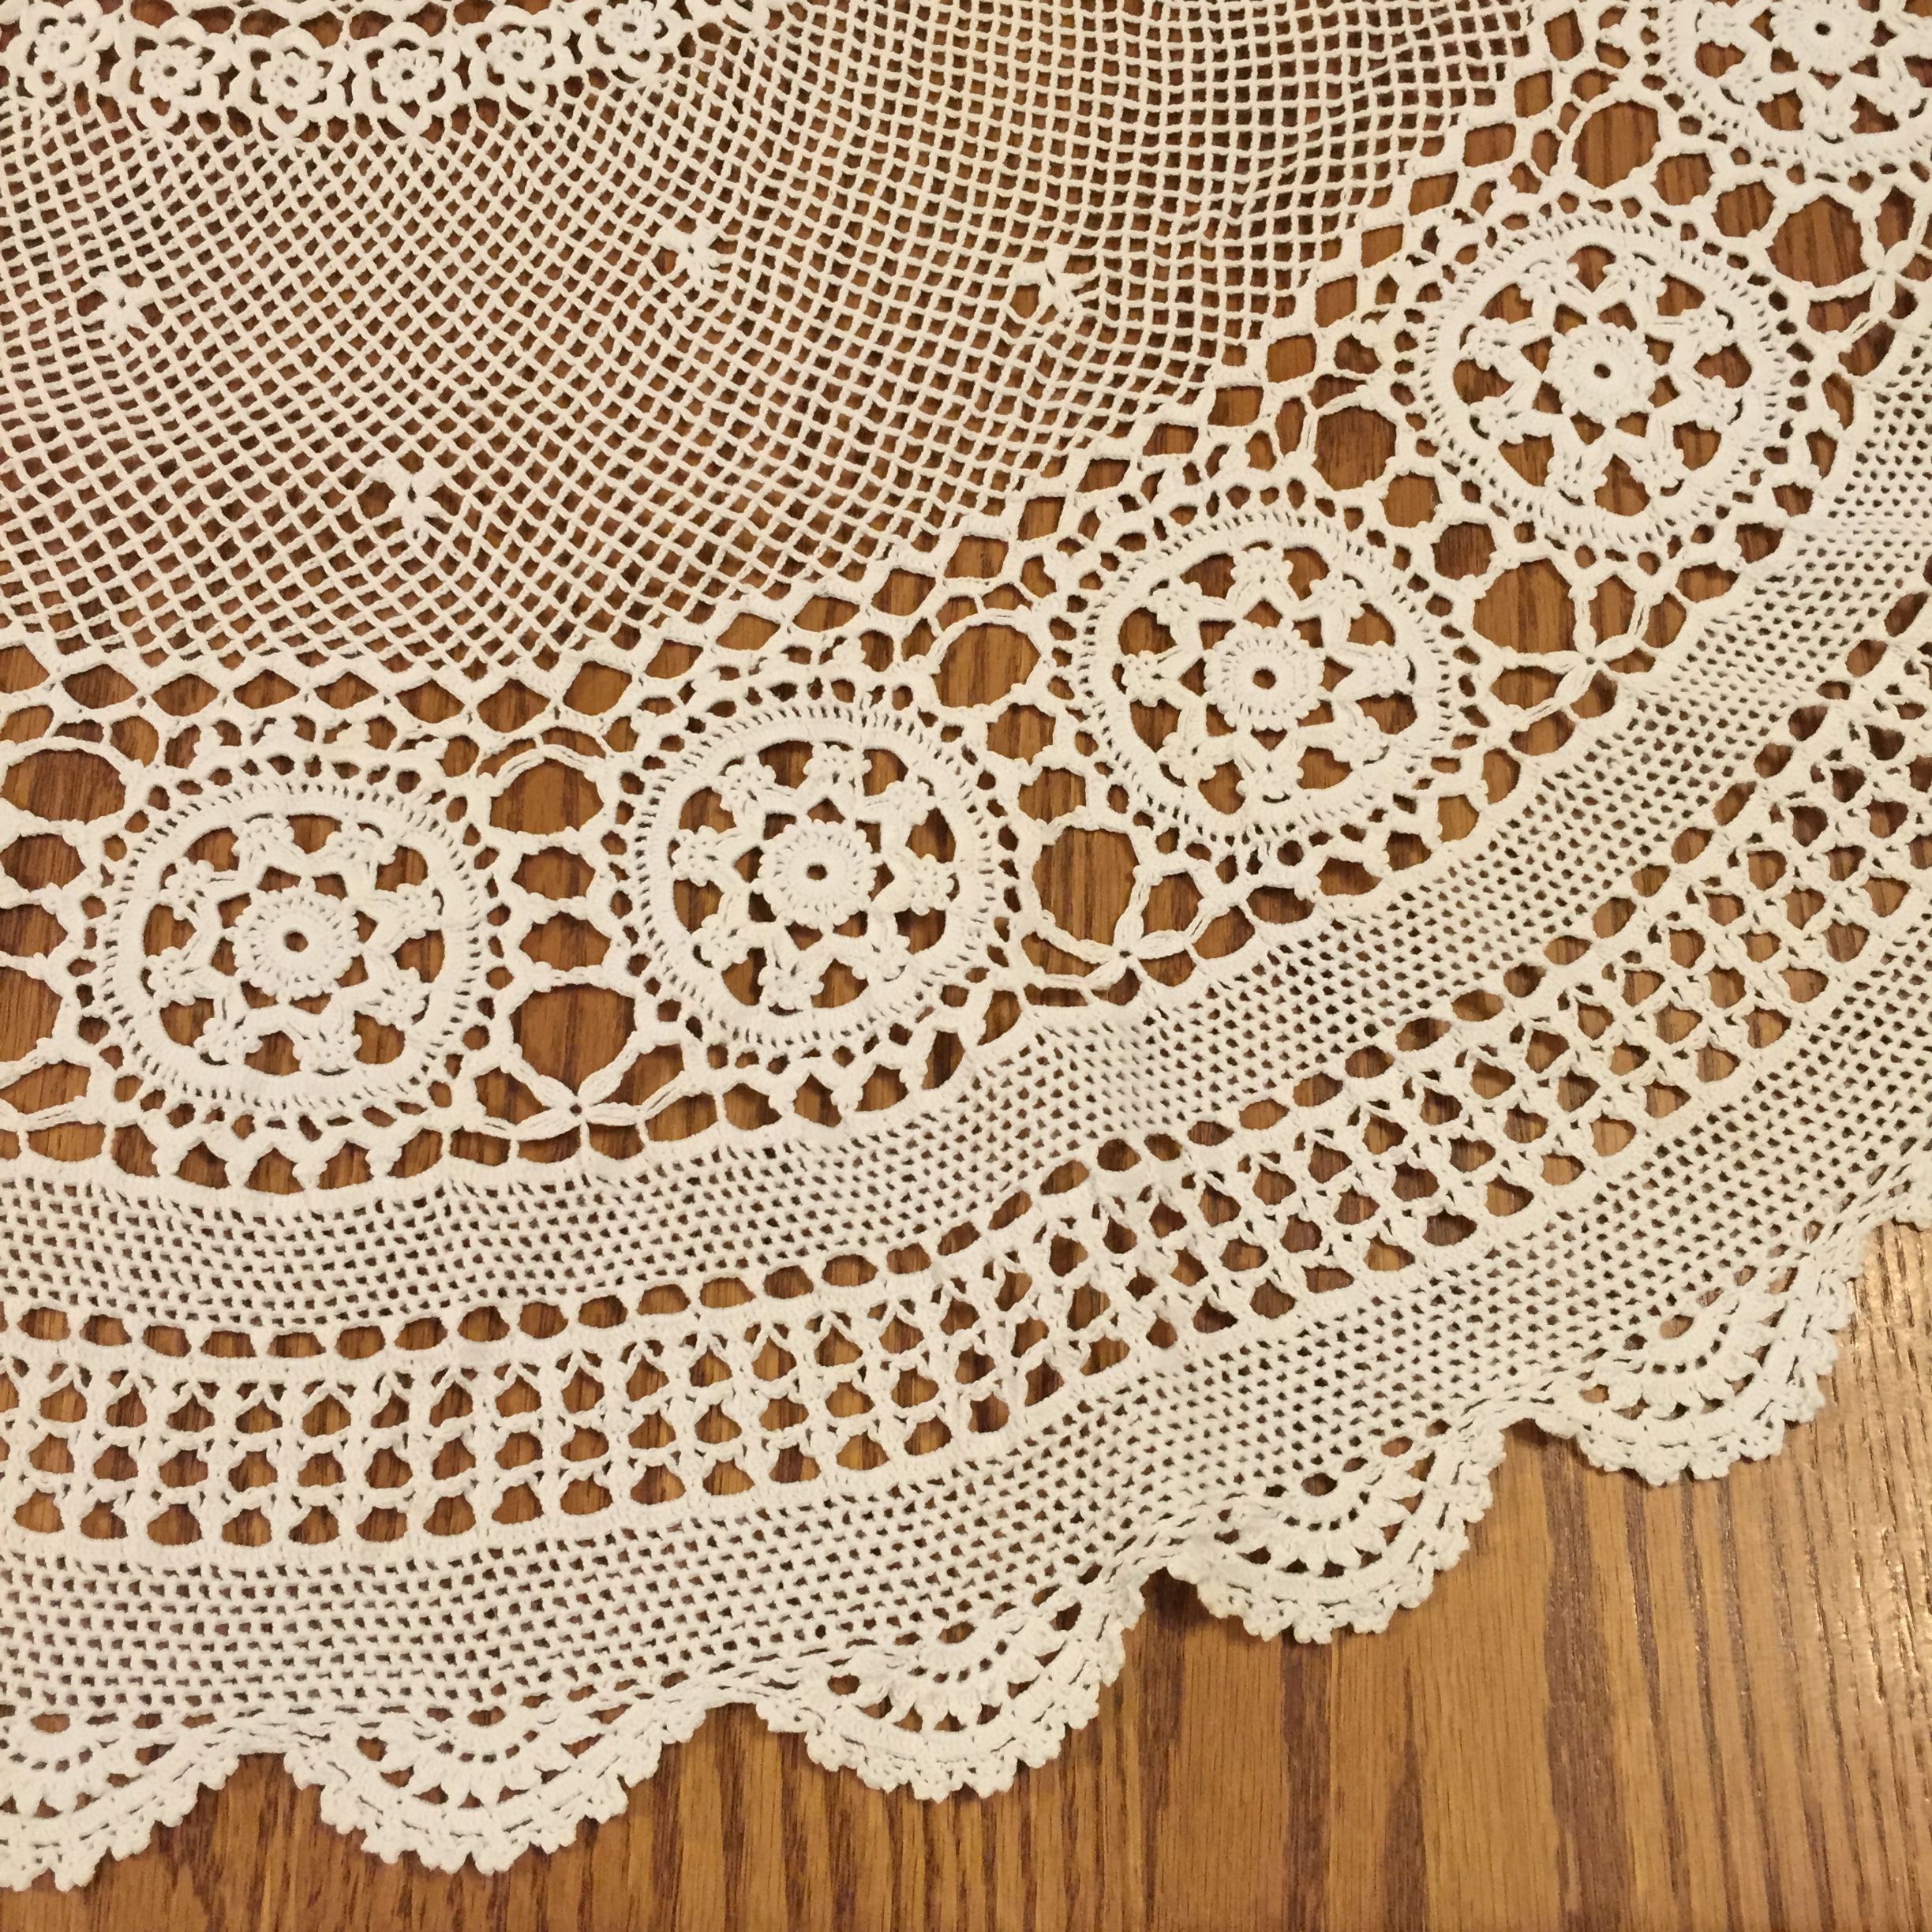 Table Cloth Background : Lace Tablecloth Background Sewing – judy nolan